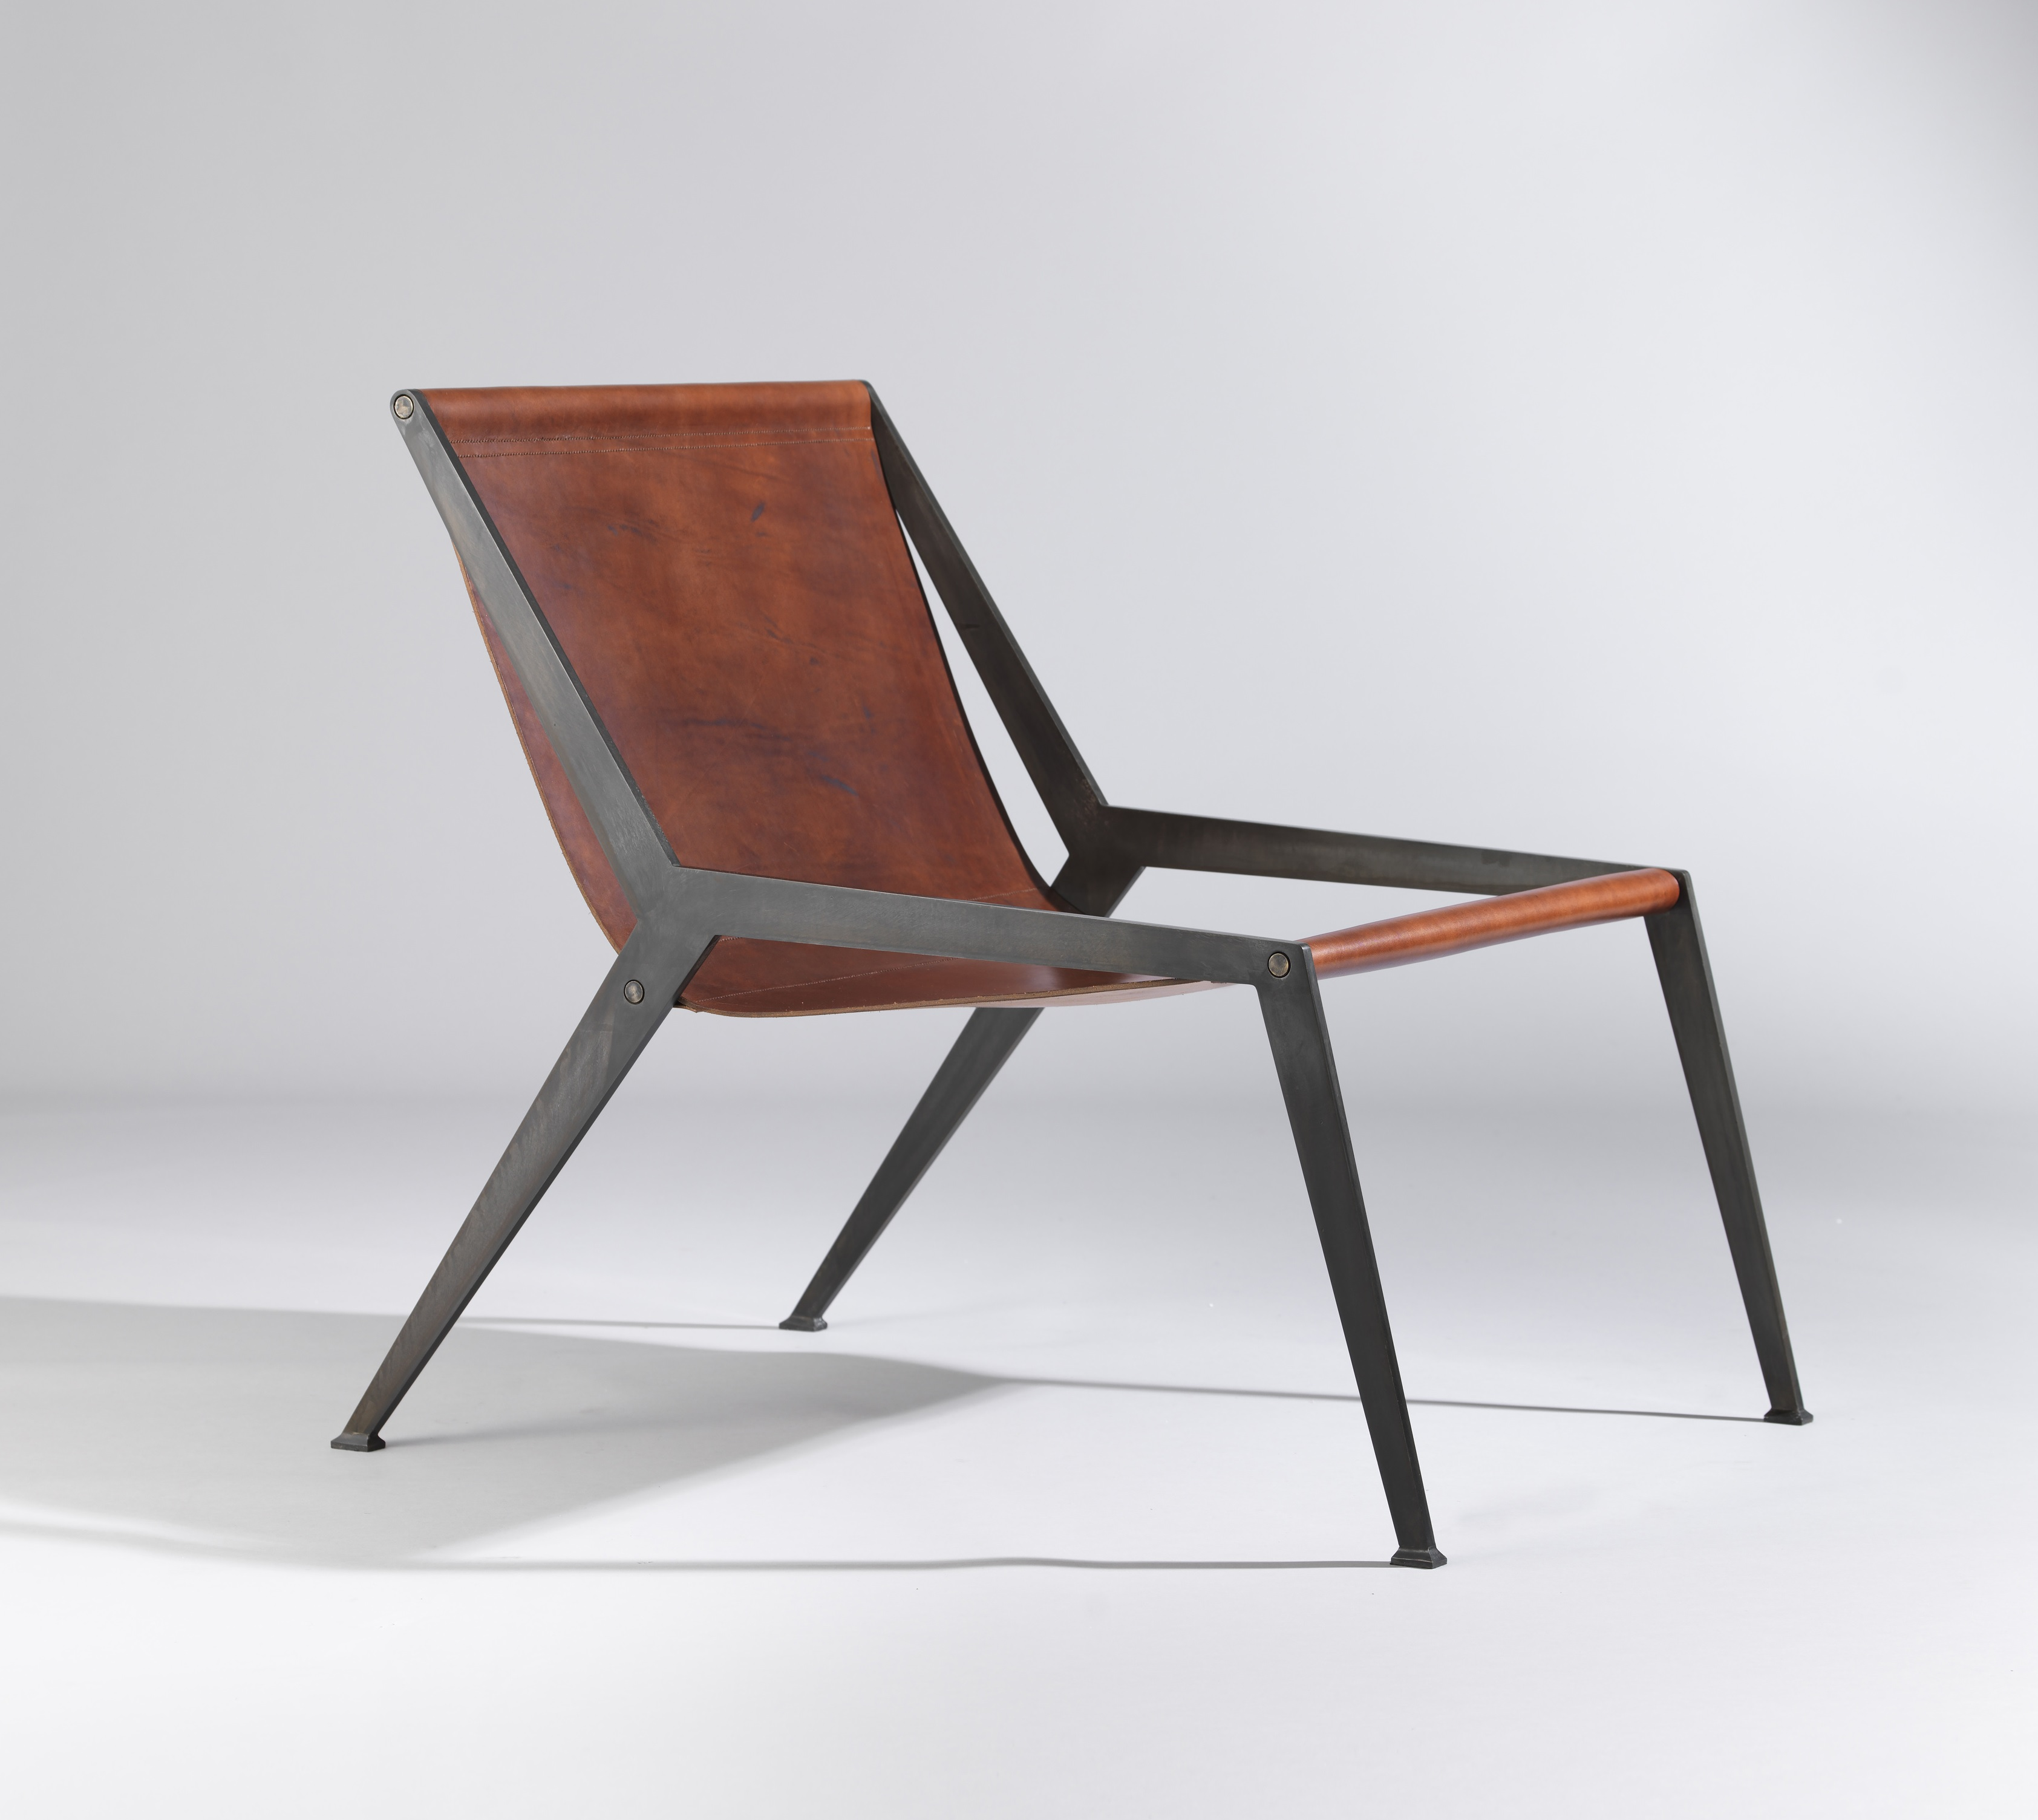 Tom Faulkner - Berlin Chair